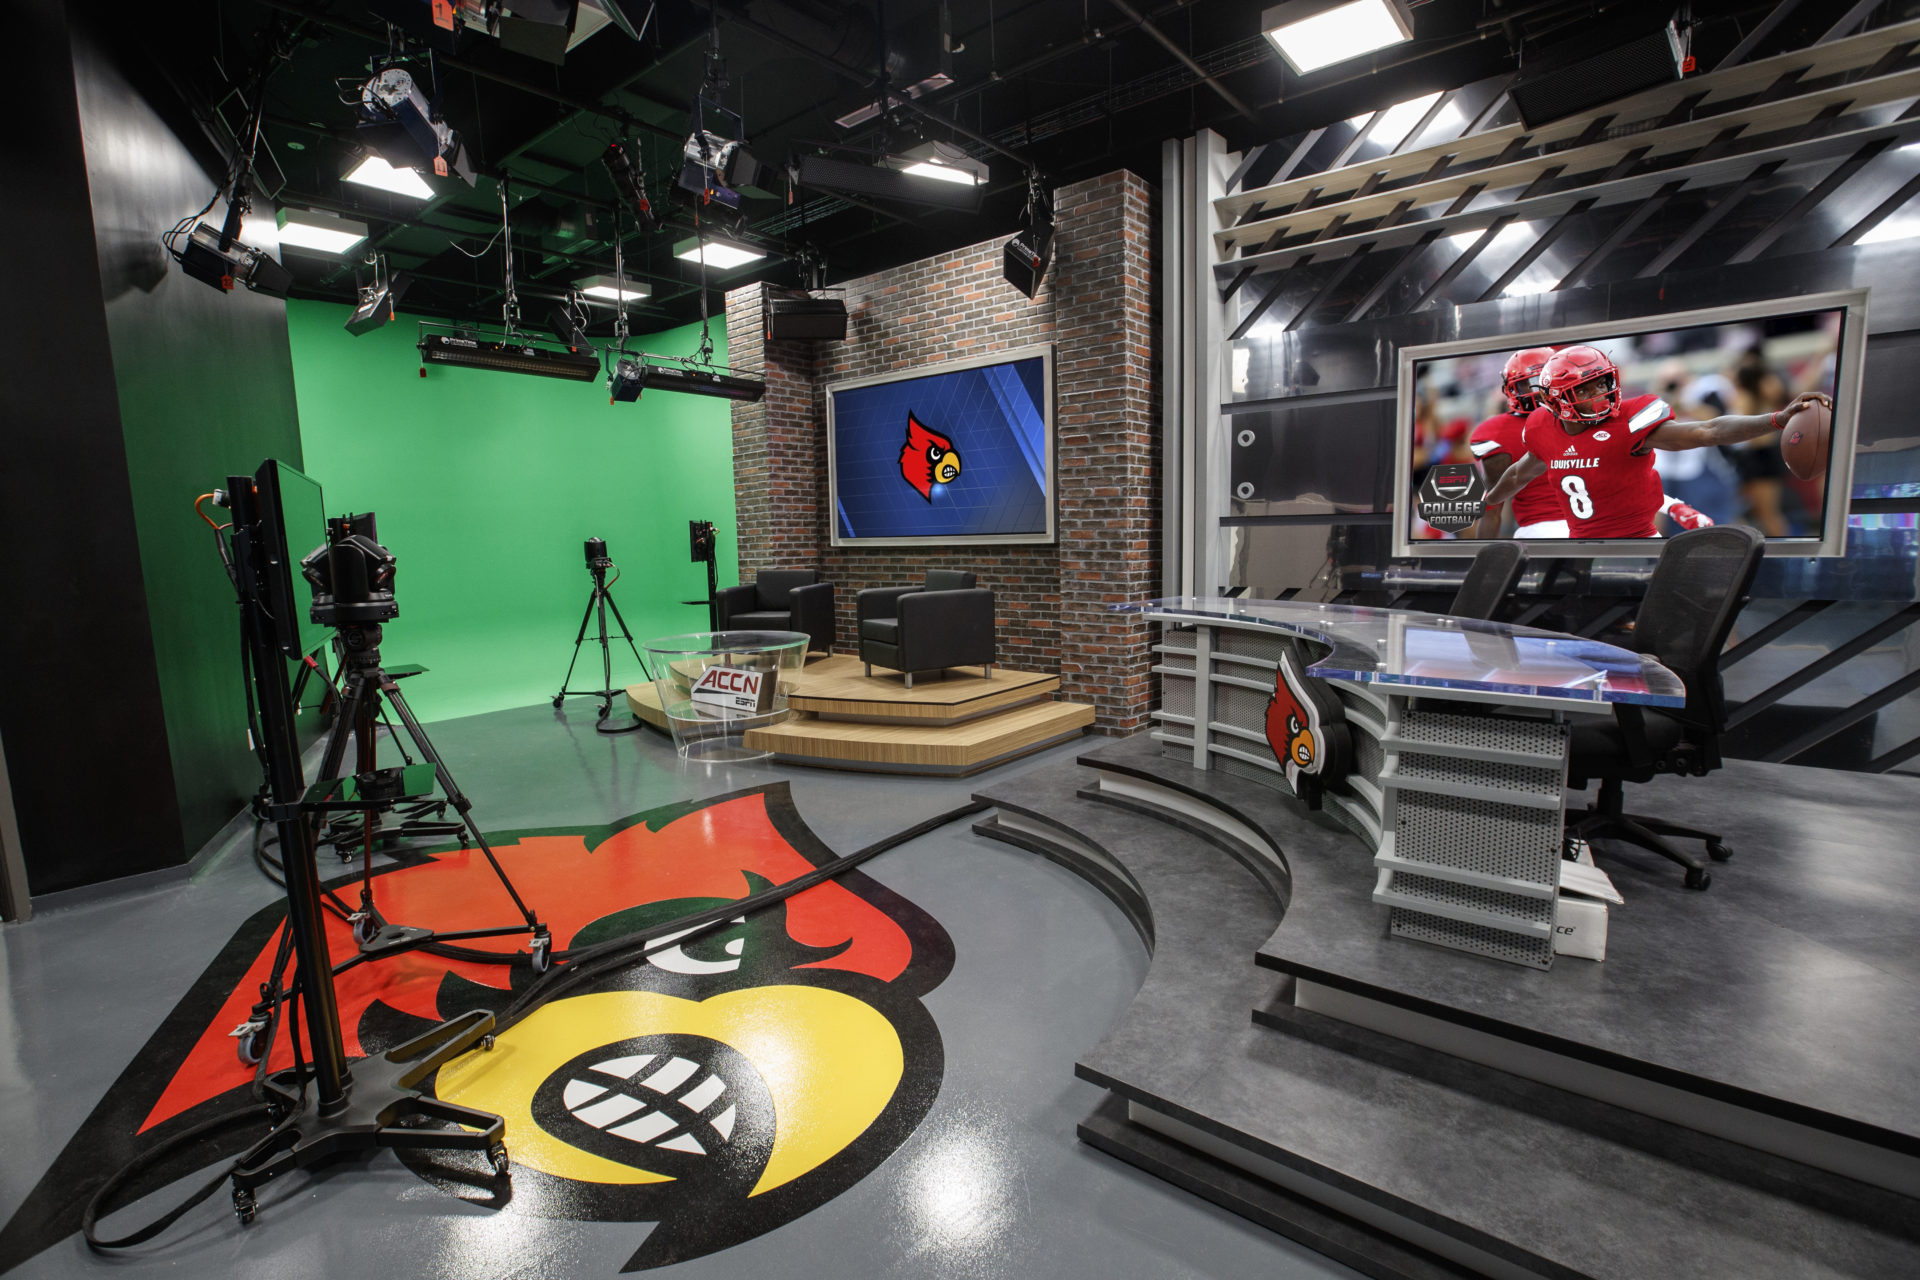 Atlantic Coast Conference, ACC Network, College Sports, ESPN, Broadcast Studio, Production Studio, University of Louisville, UofL, AV Consultant, A/V Consultant, Owners Representative, Owners Rep, AV Engineering, Broadcast Engineering, Distributed TV